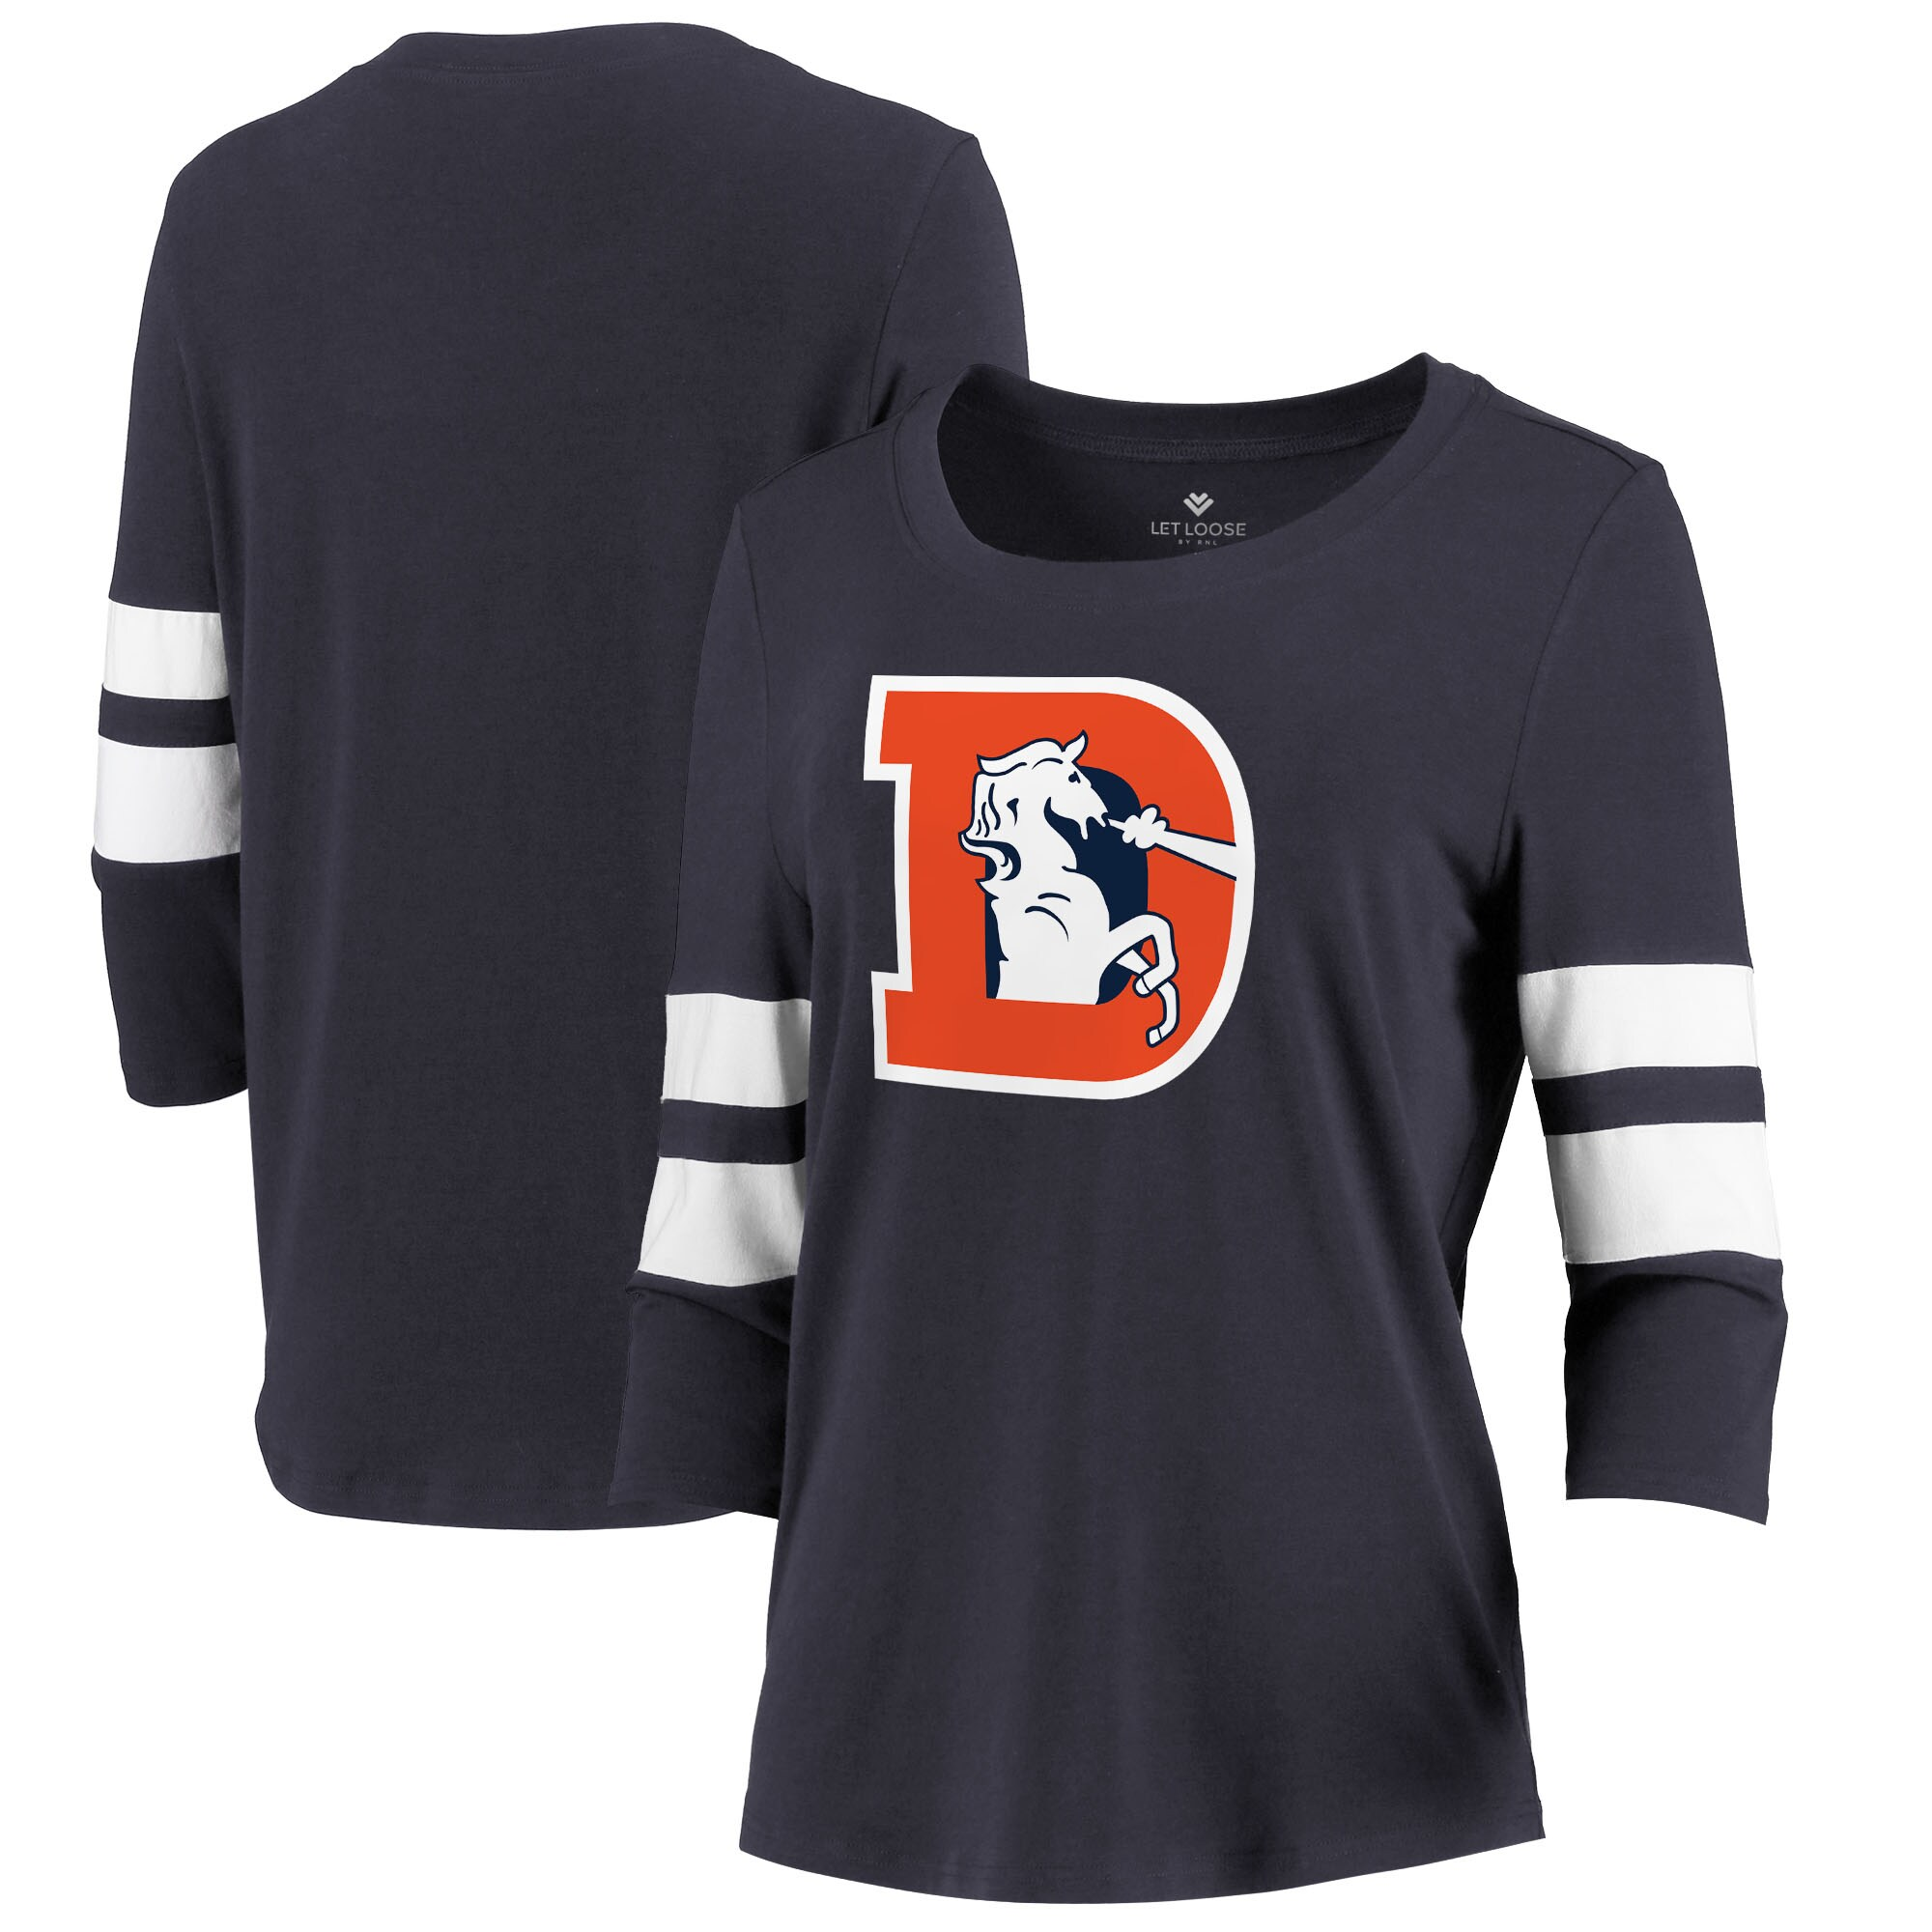 Denver Broncos Let Loose by RNL Women's Team Logo Stripe Tri-Blend 3/4 Sleeve T-Shirt - Navy